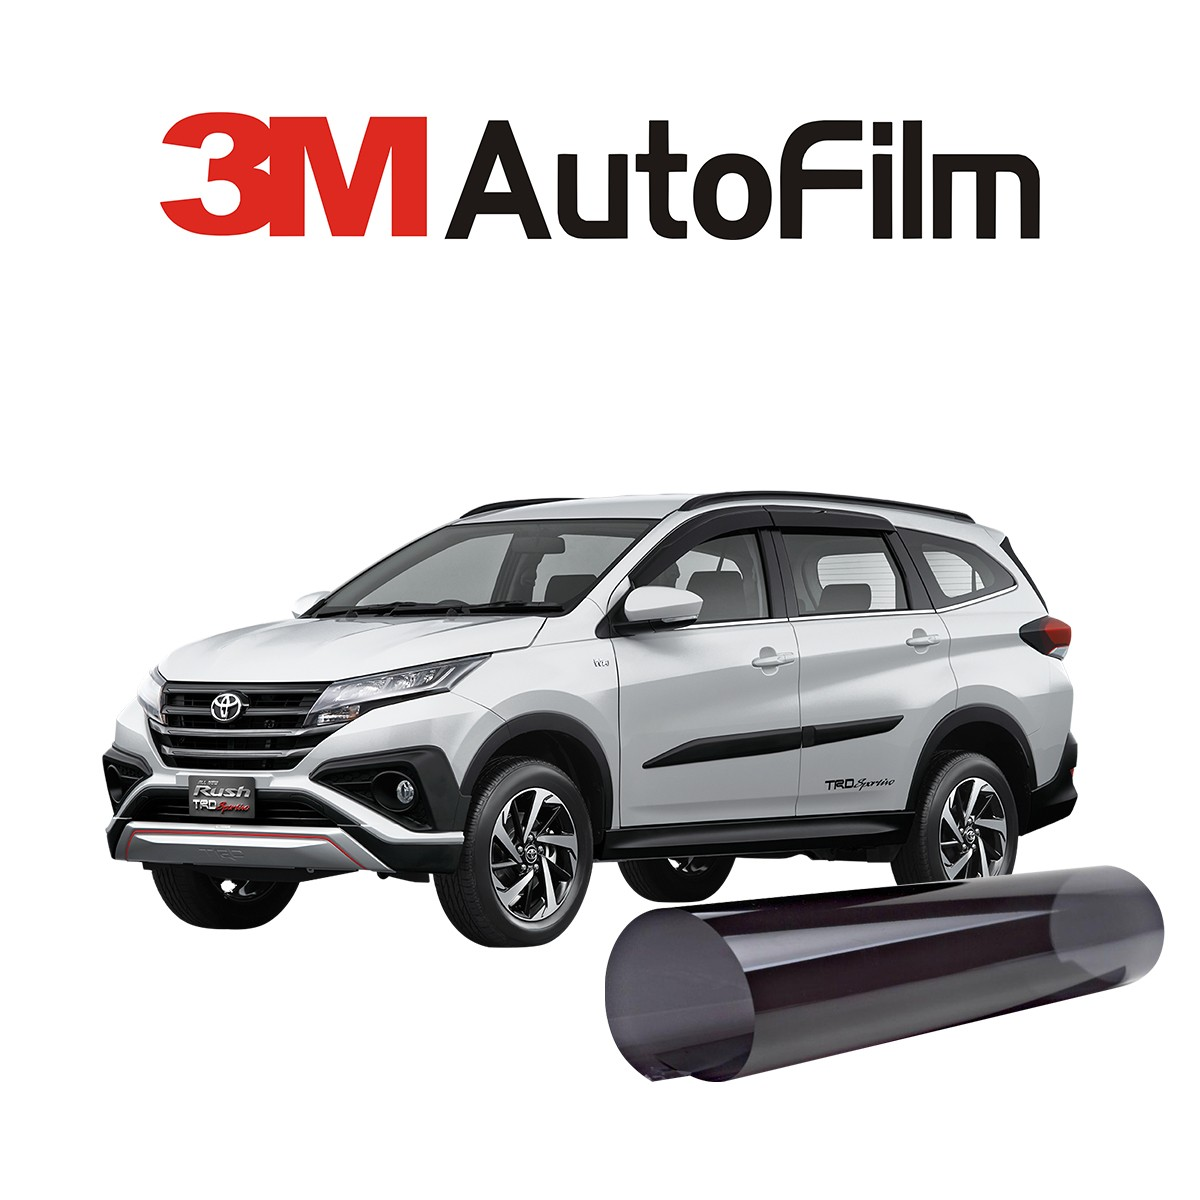 KACA FILM 3M BLACK BEAUTY - (TOYOTA ALL NEW RUSH) KACA SAMPING BELAKANG